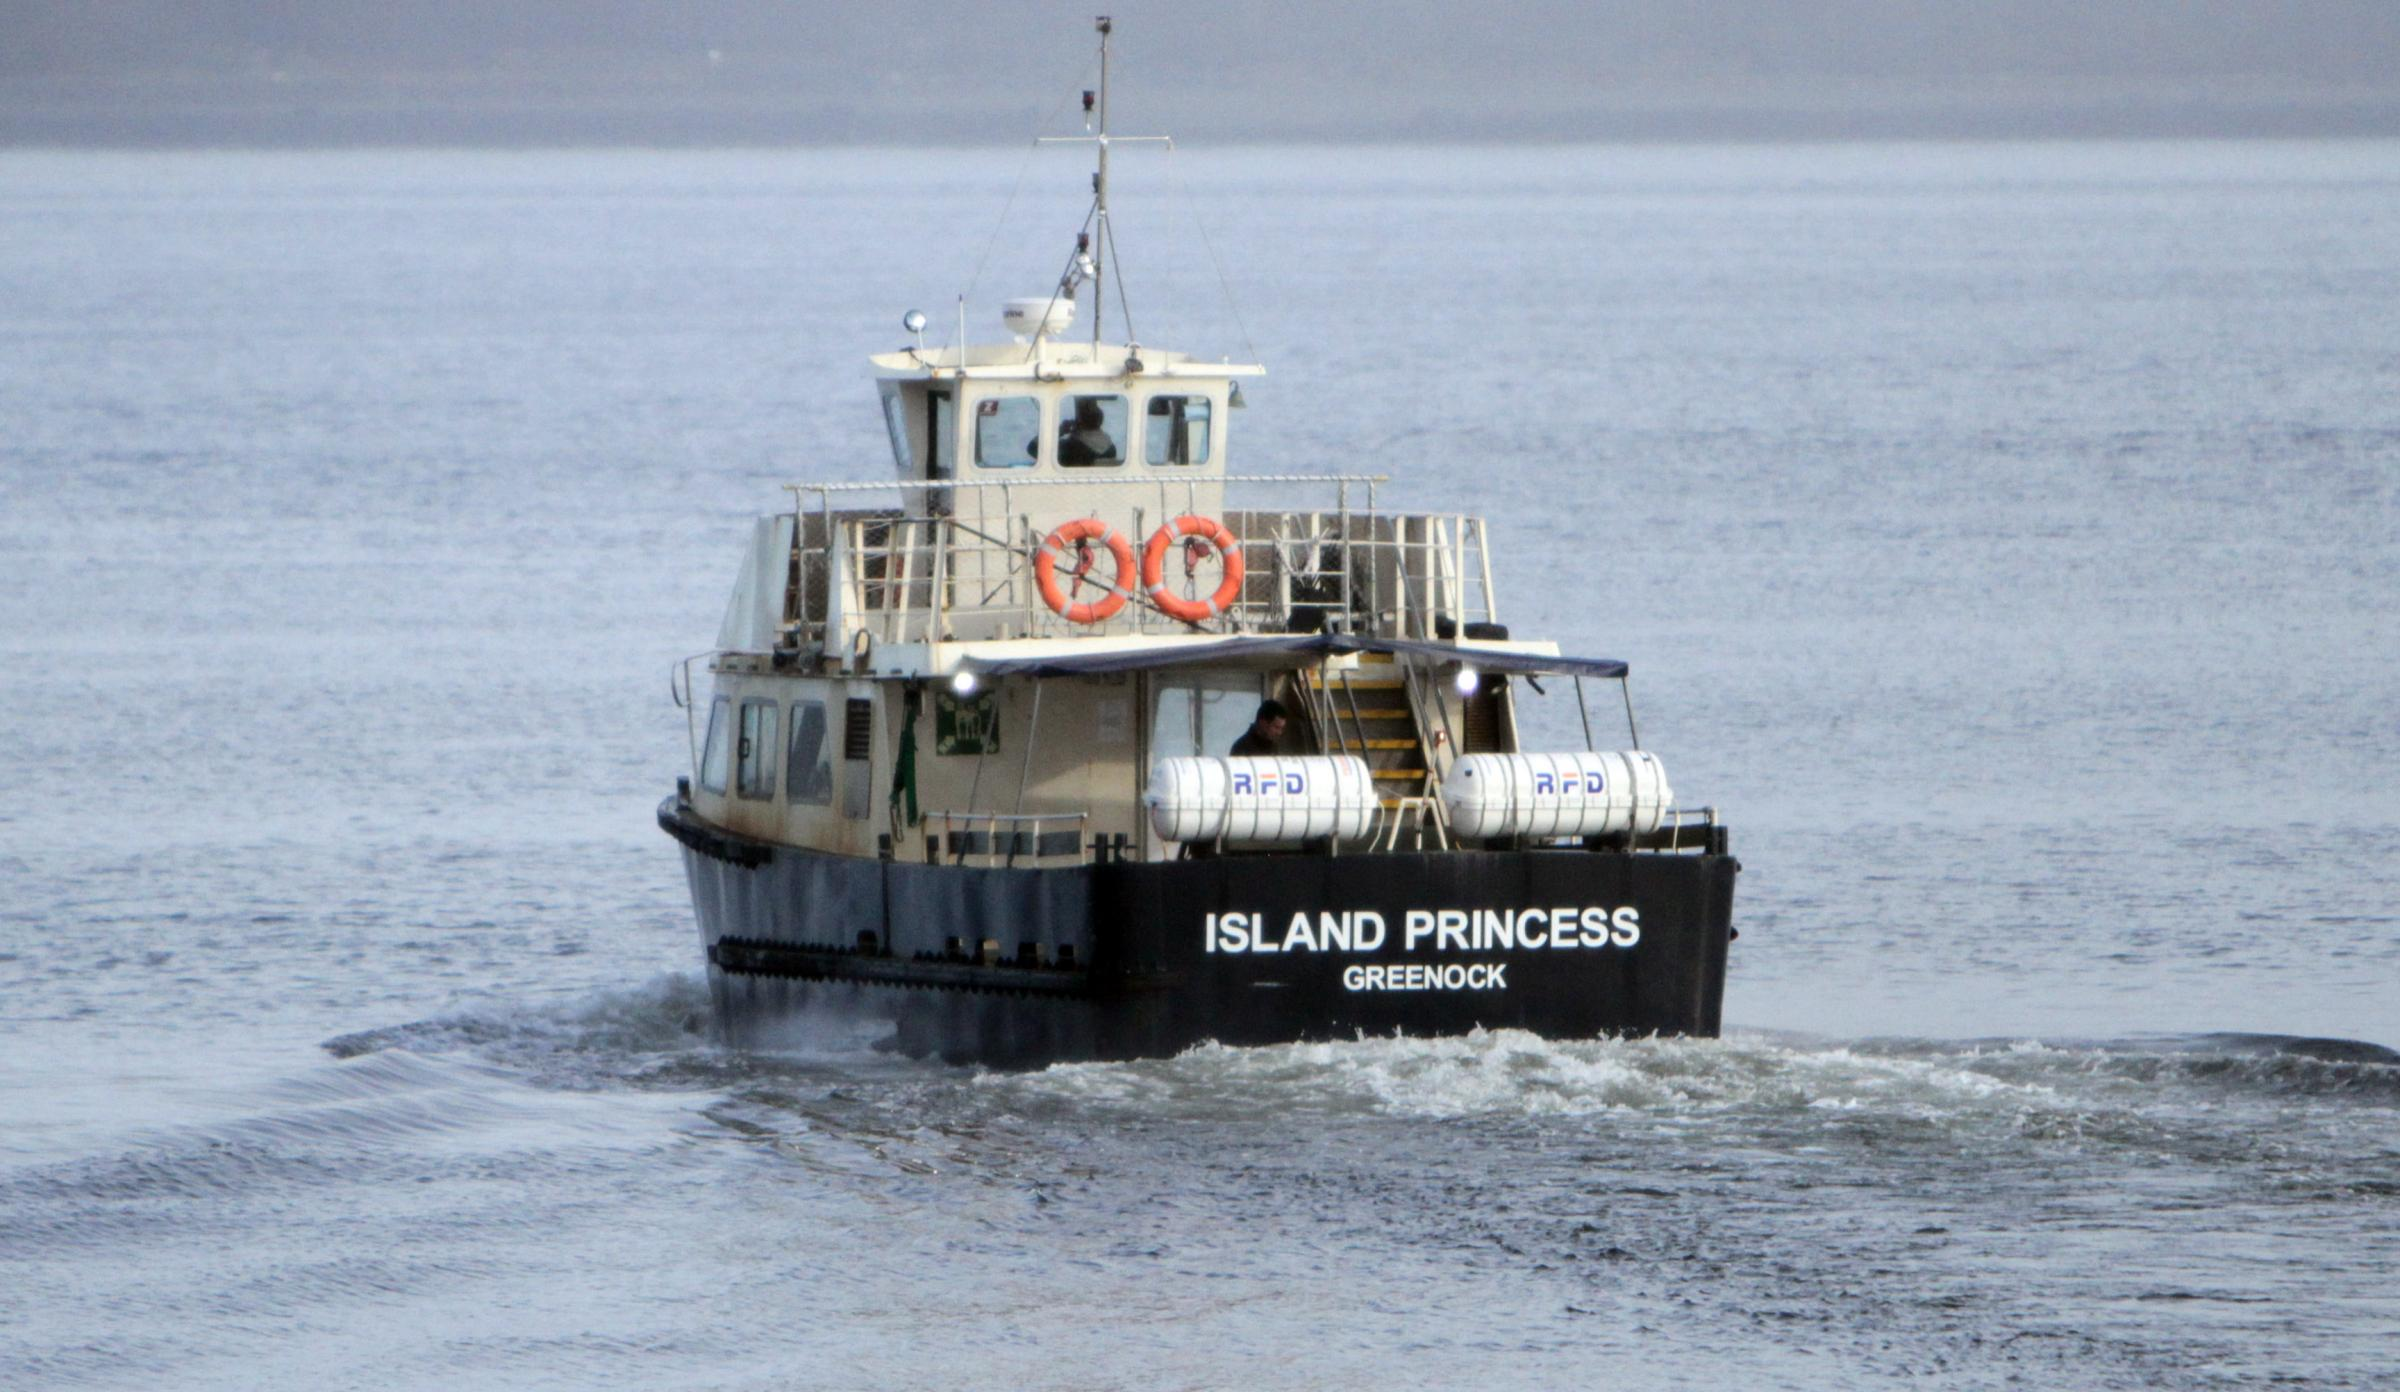 Gourock to Kilcreggan ferry operators reported over health and safety concerns